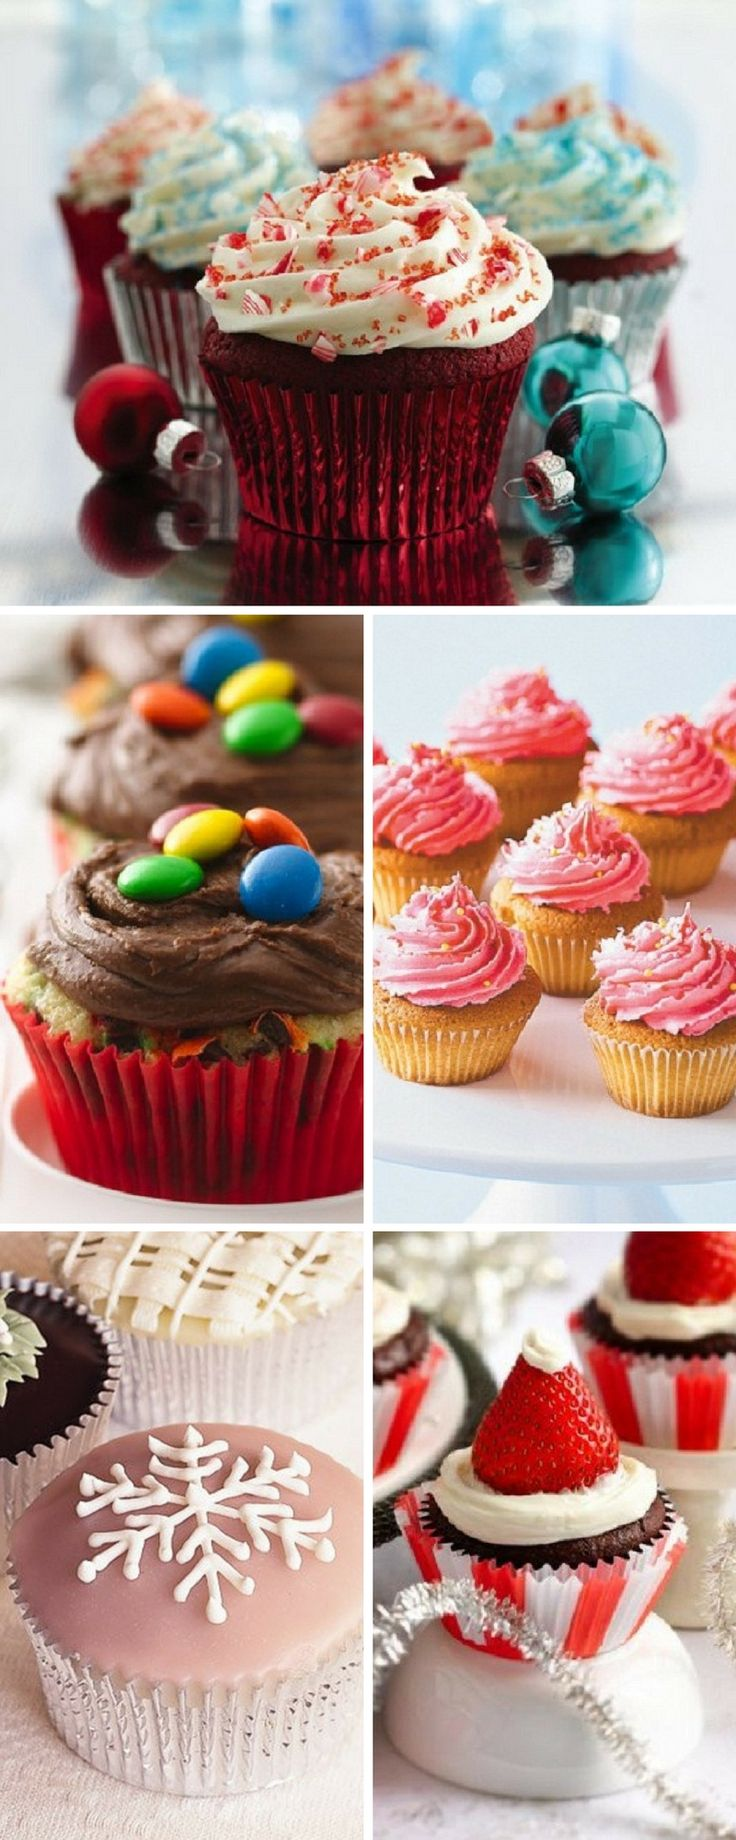 We have made a great list of top 10 magical cupcakes especially for Christmas. Make some of these cute ideas and indulge your sweet tooth with something incredible. We guarantee that you will surprise everyone!